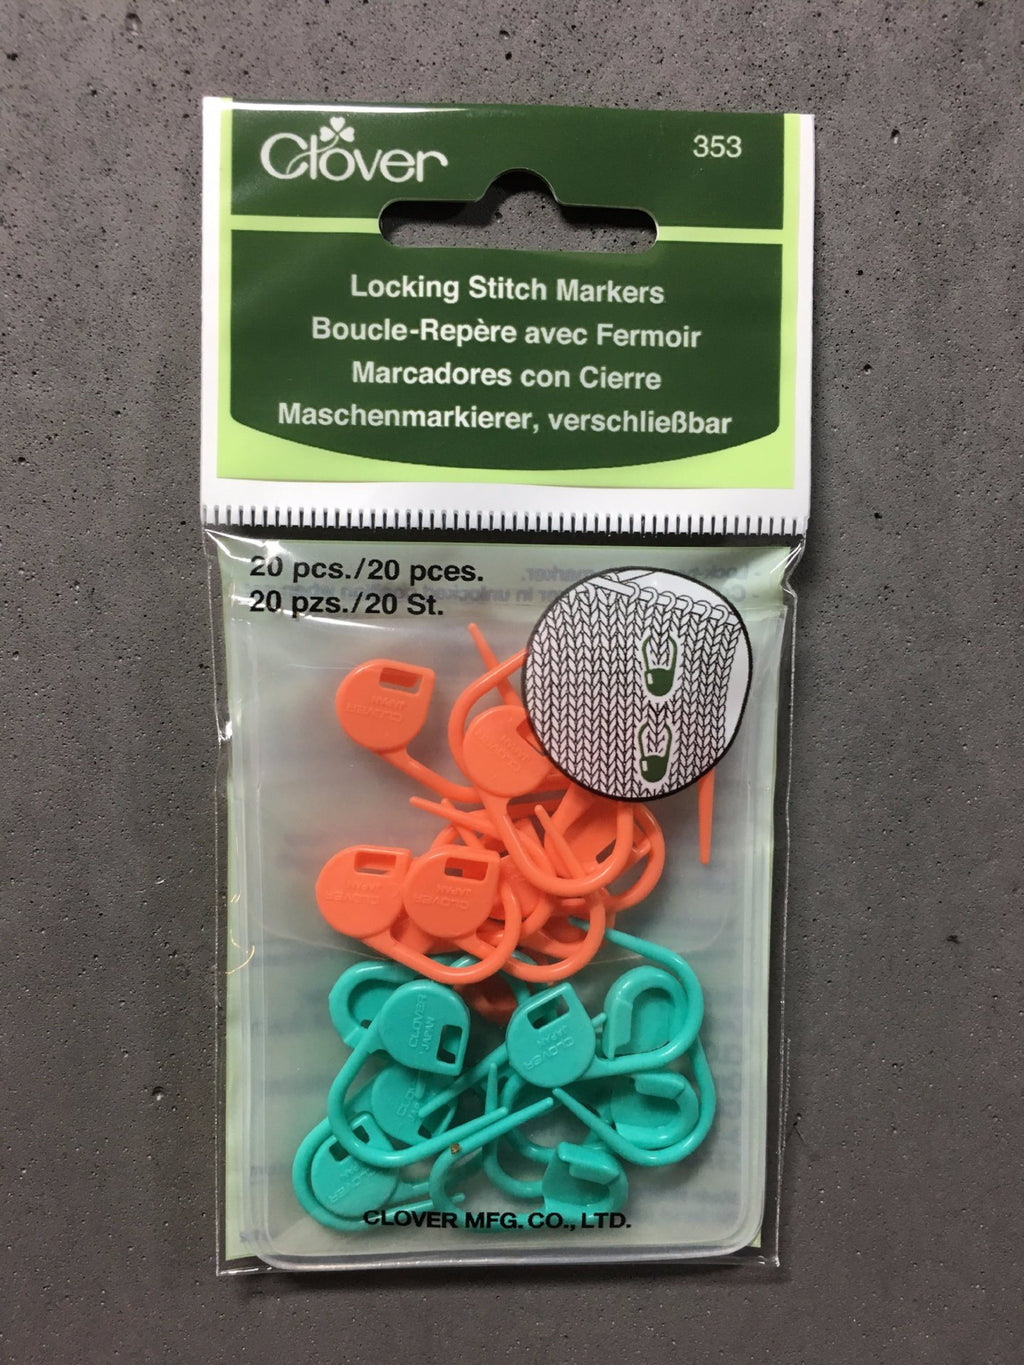 Clover Locking Stitch Markers 353